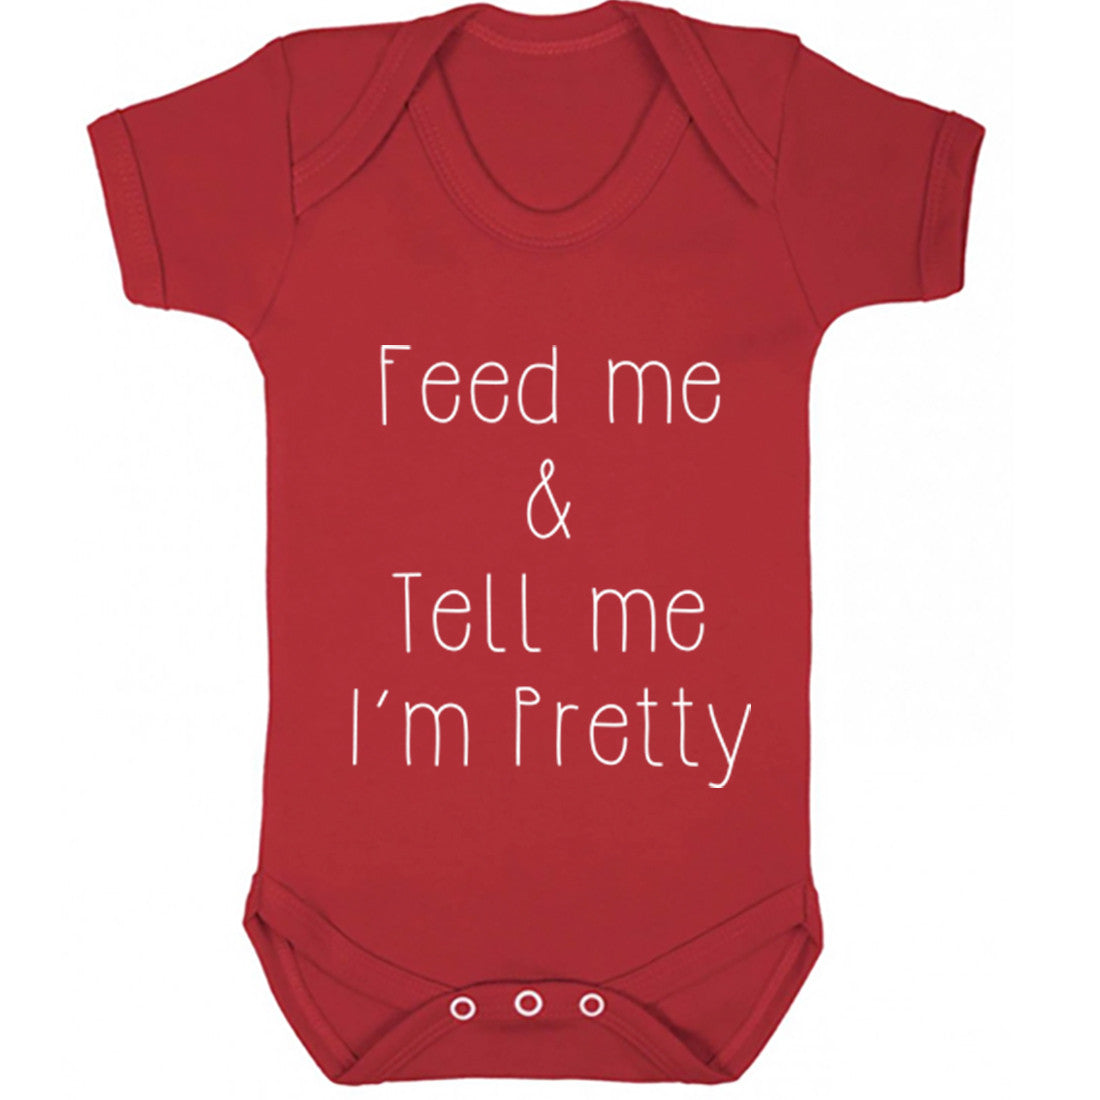 Feed Me And Tell Me I'm Pretty Baby Vest K0176